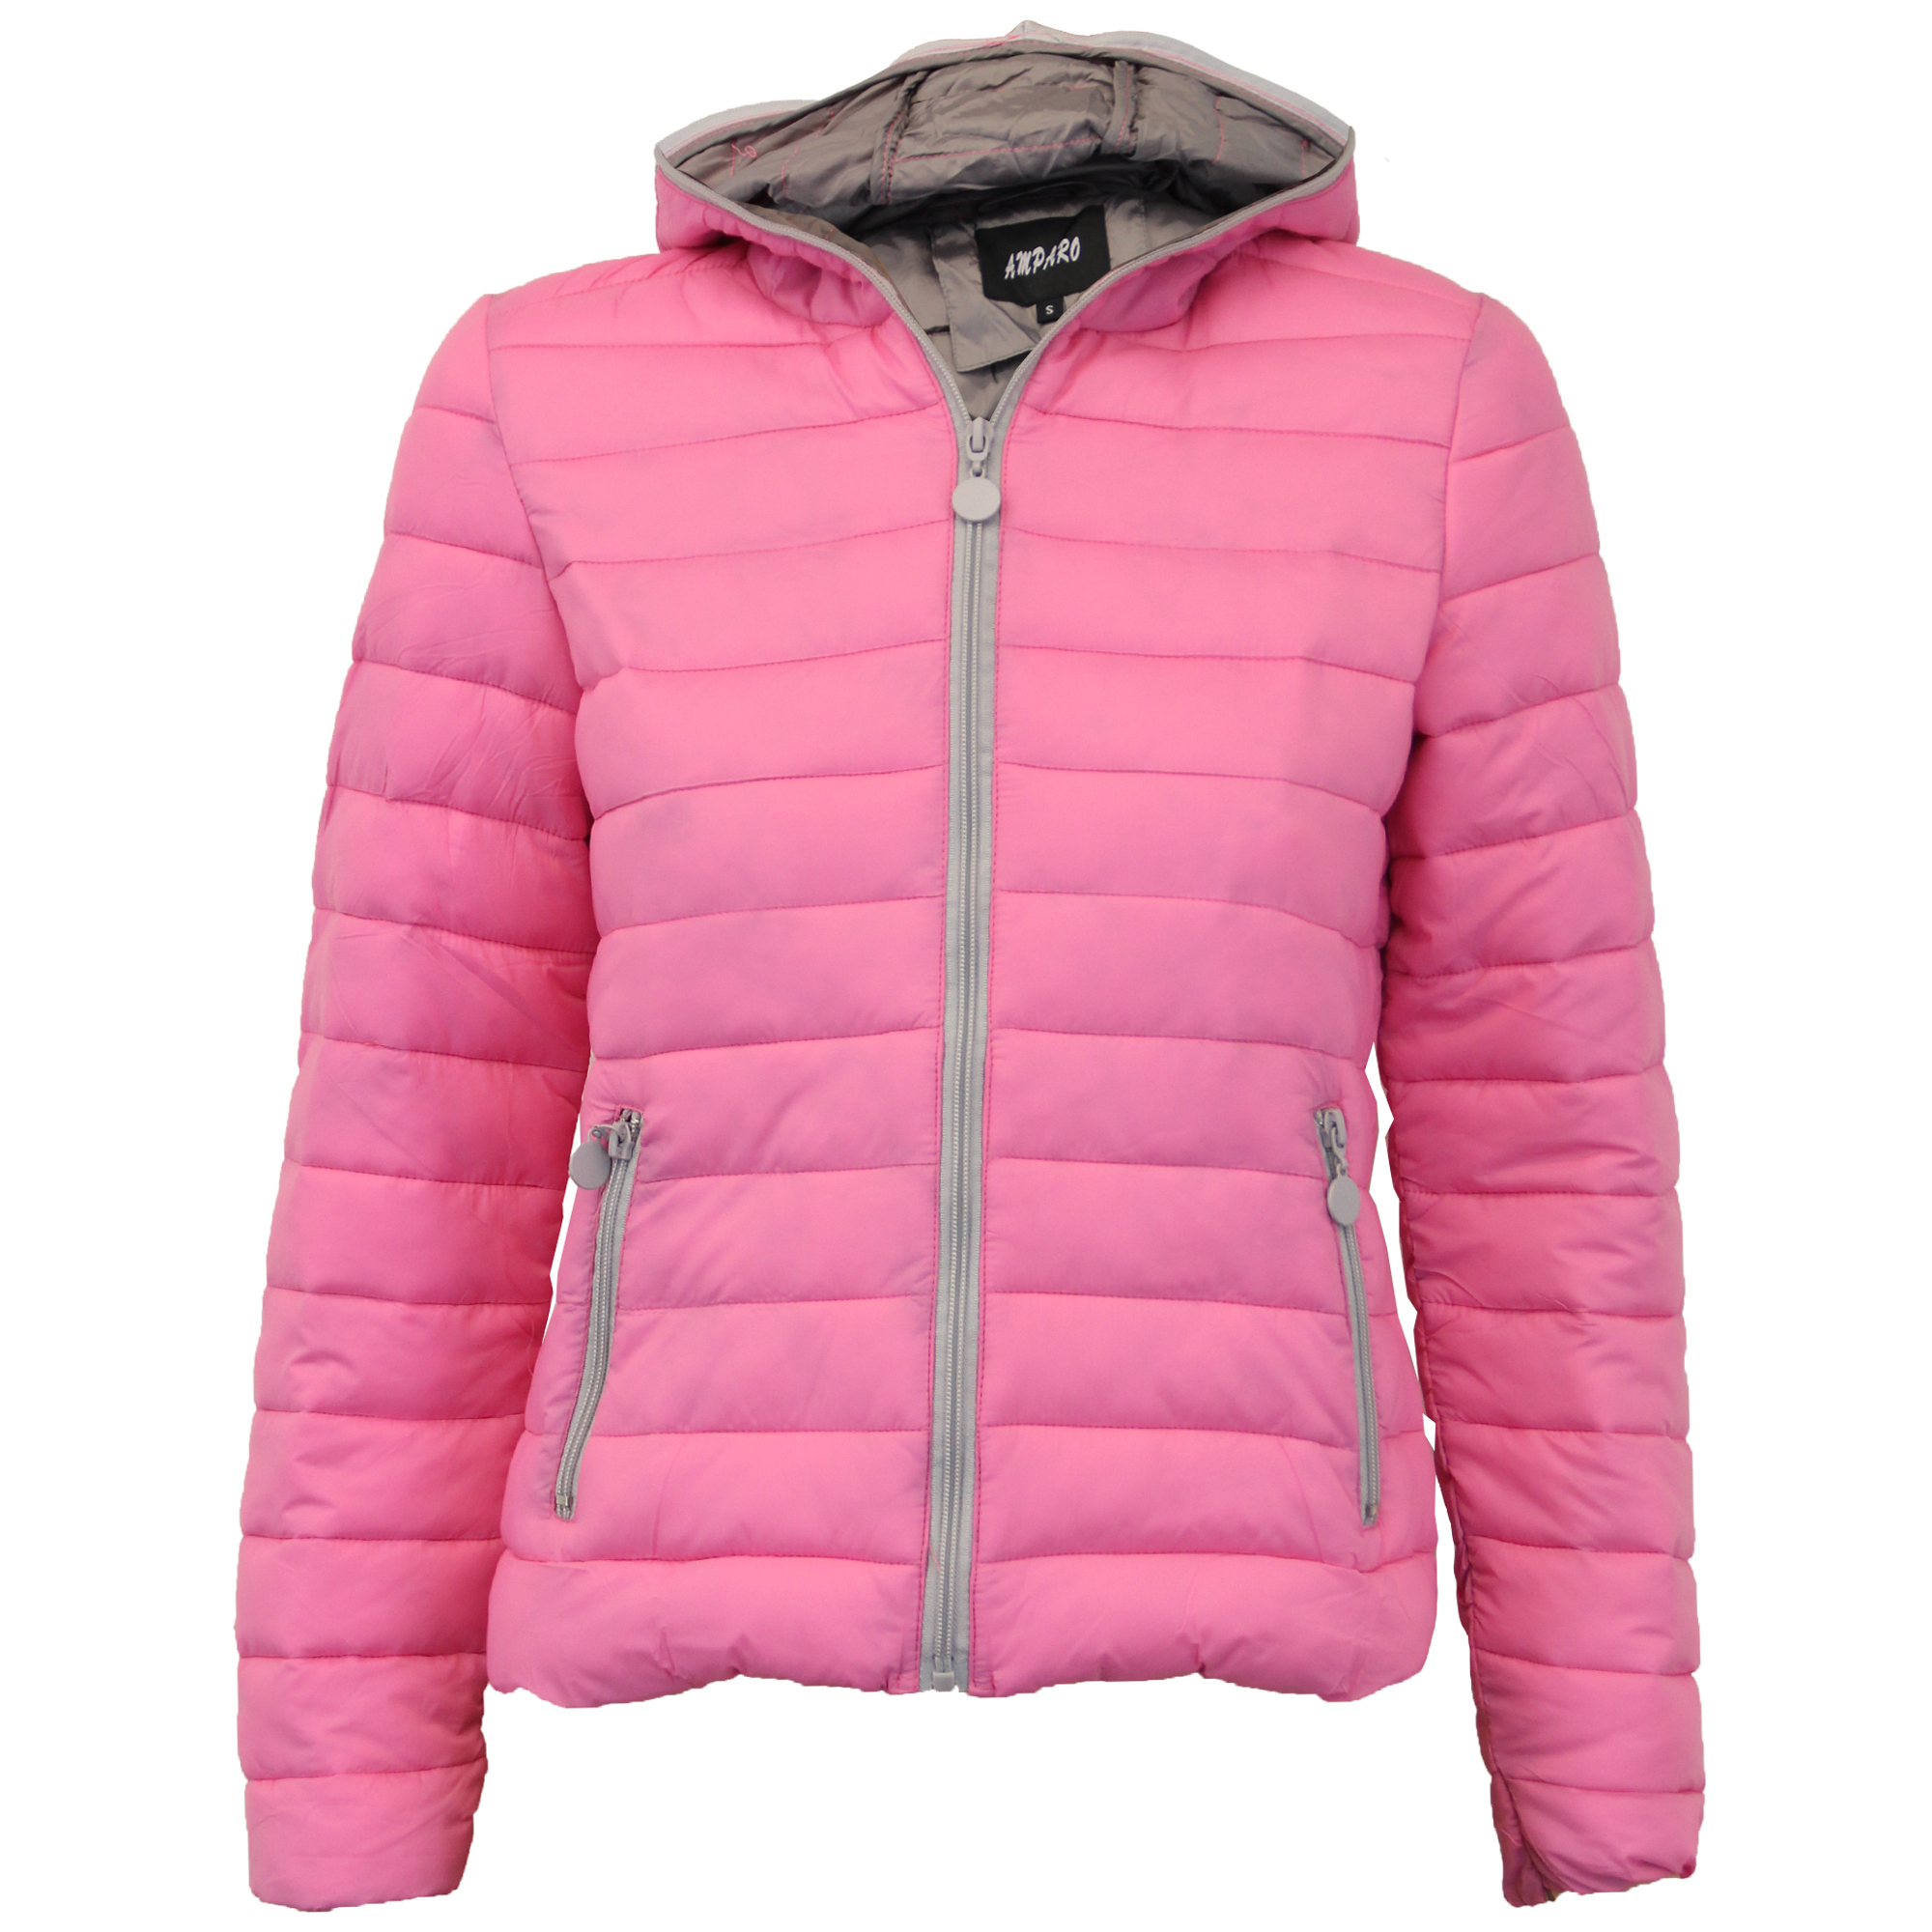 FLIRTY WARDROBE Womens Wet Look Cropped Jackets Coat Ladies Padded Bomber Bubble Puffer Short UK. by FLIRTY WARDROBE. $ - $ $ 25 $ 34 FREE Shipping on eligible orders. 5 out of 5 stars 4. Product Description Short Padded Puffer Jacket, Side Pockets, Dry Clean Only, Excellent Quality.